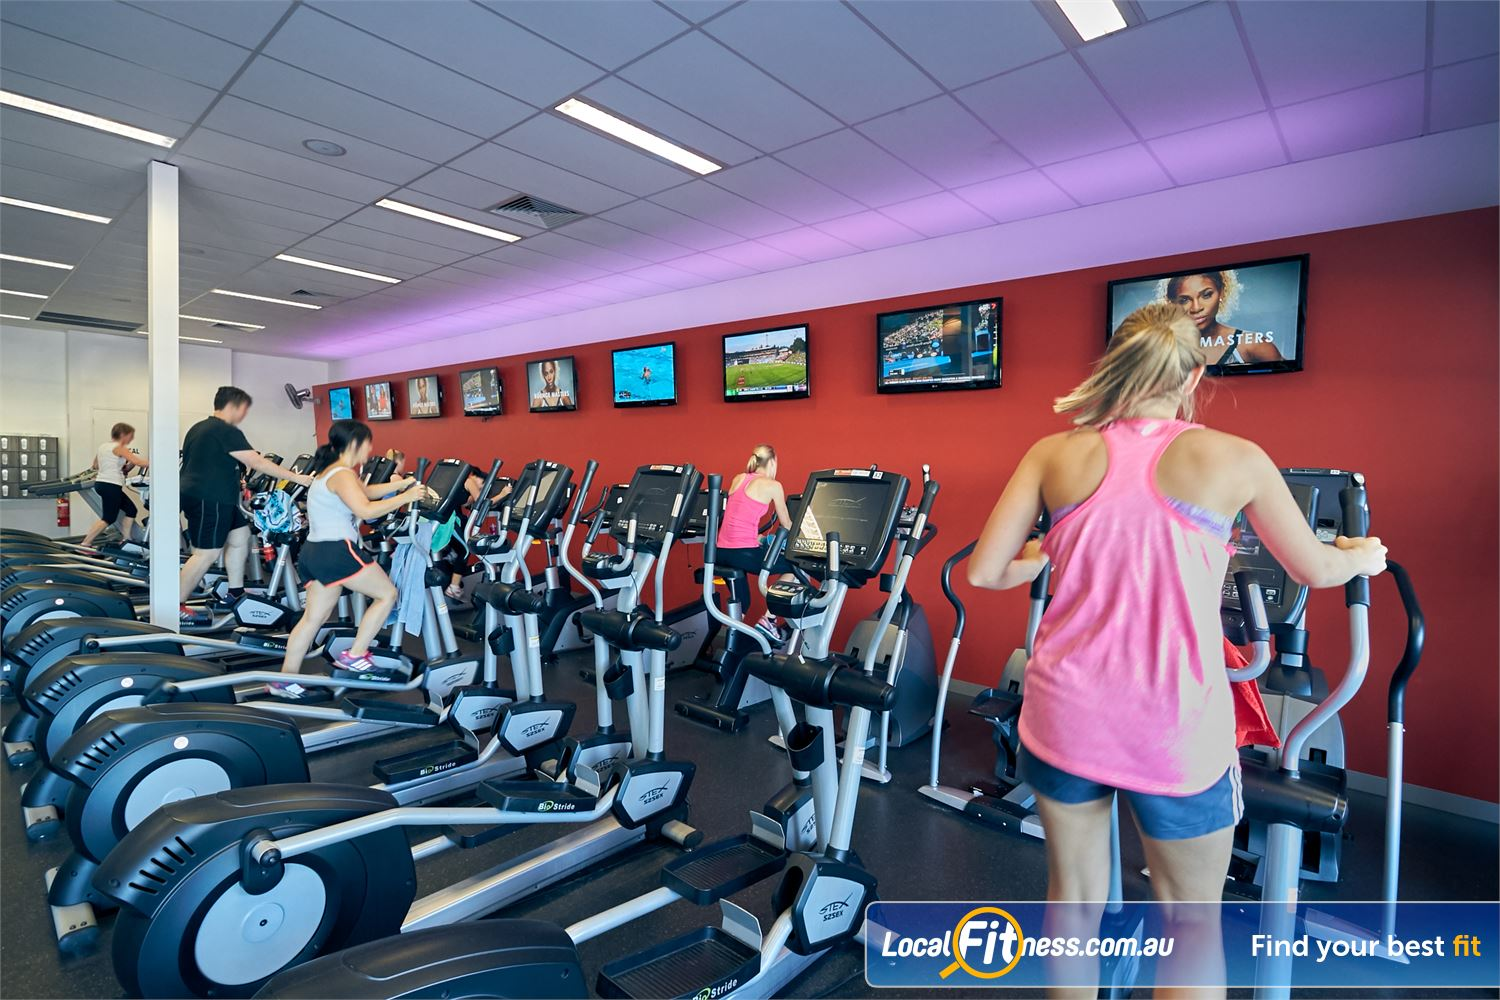 Goodlife Health Clubs Cross Roads Near Hawthorn Our Westbourne Park gym facilities include the latest Stex cardio with in-built LCD and iPod connectivity.